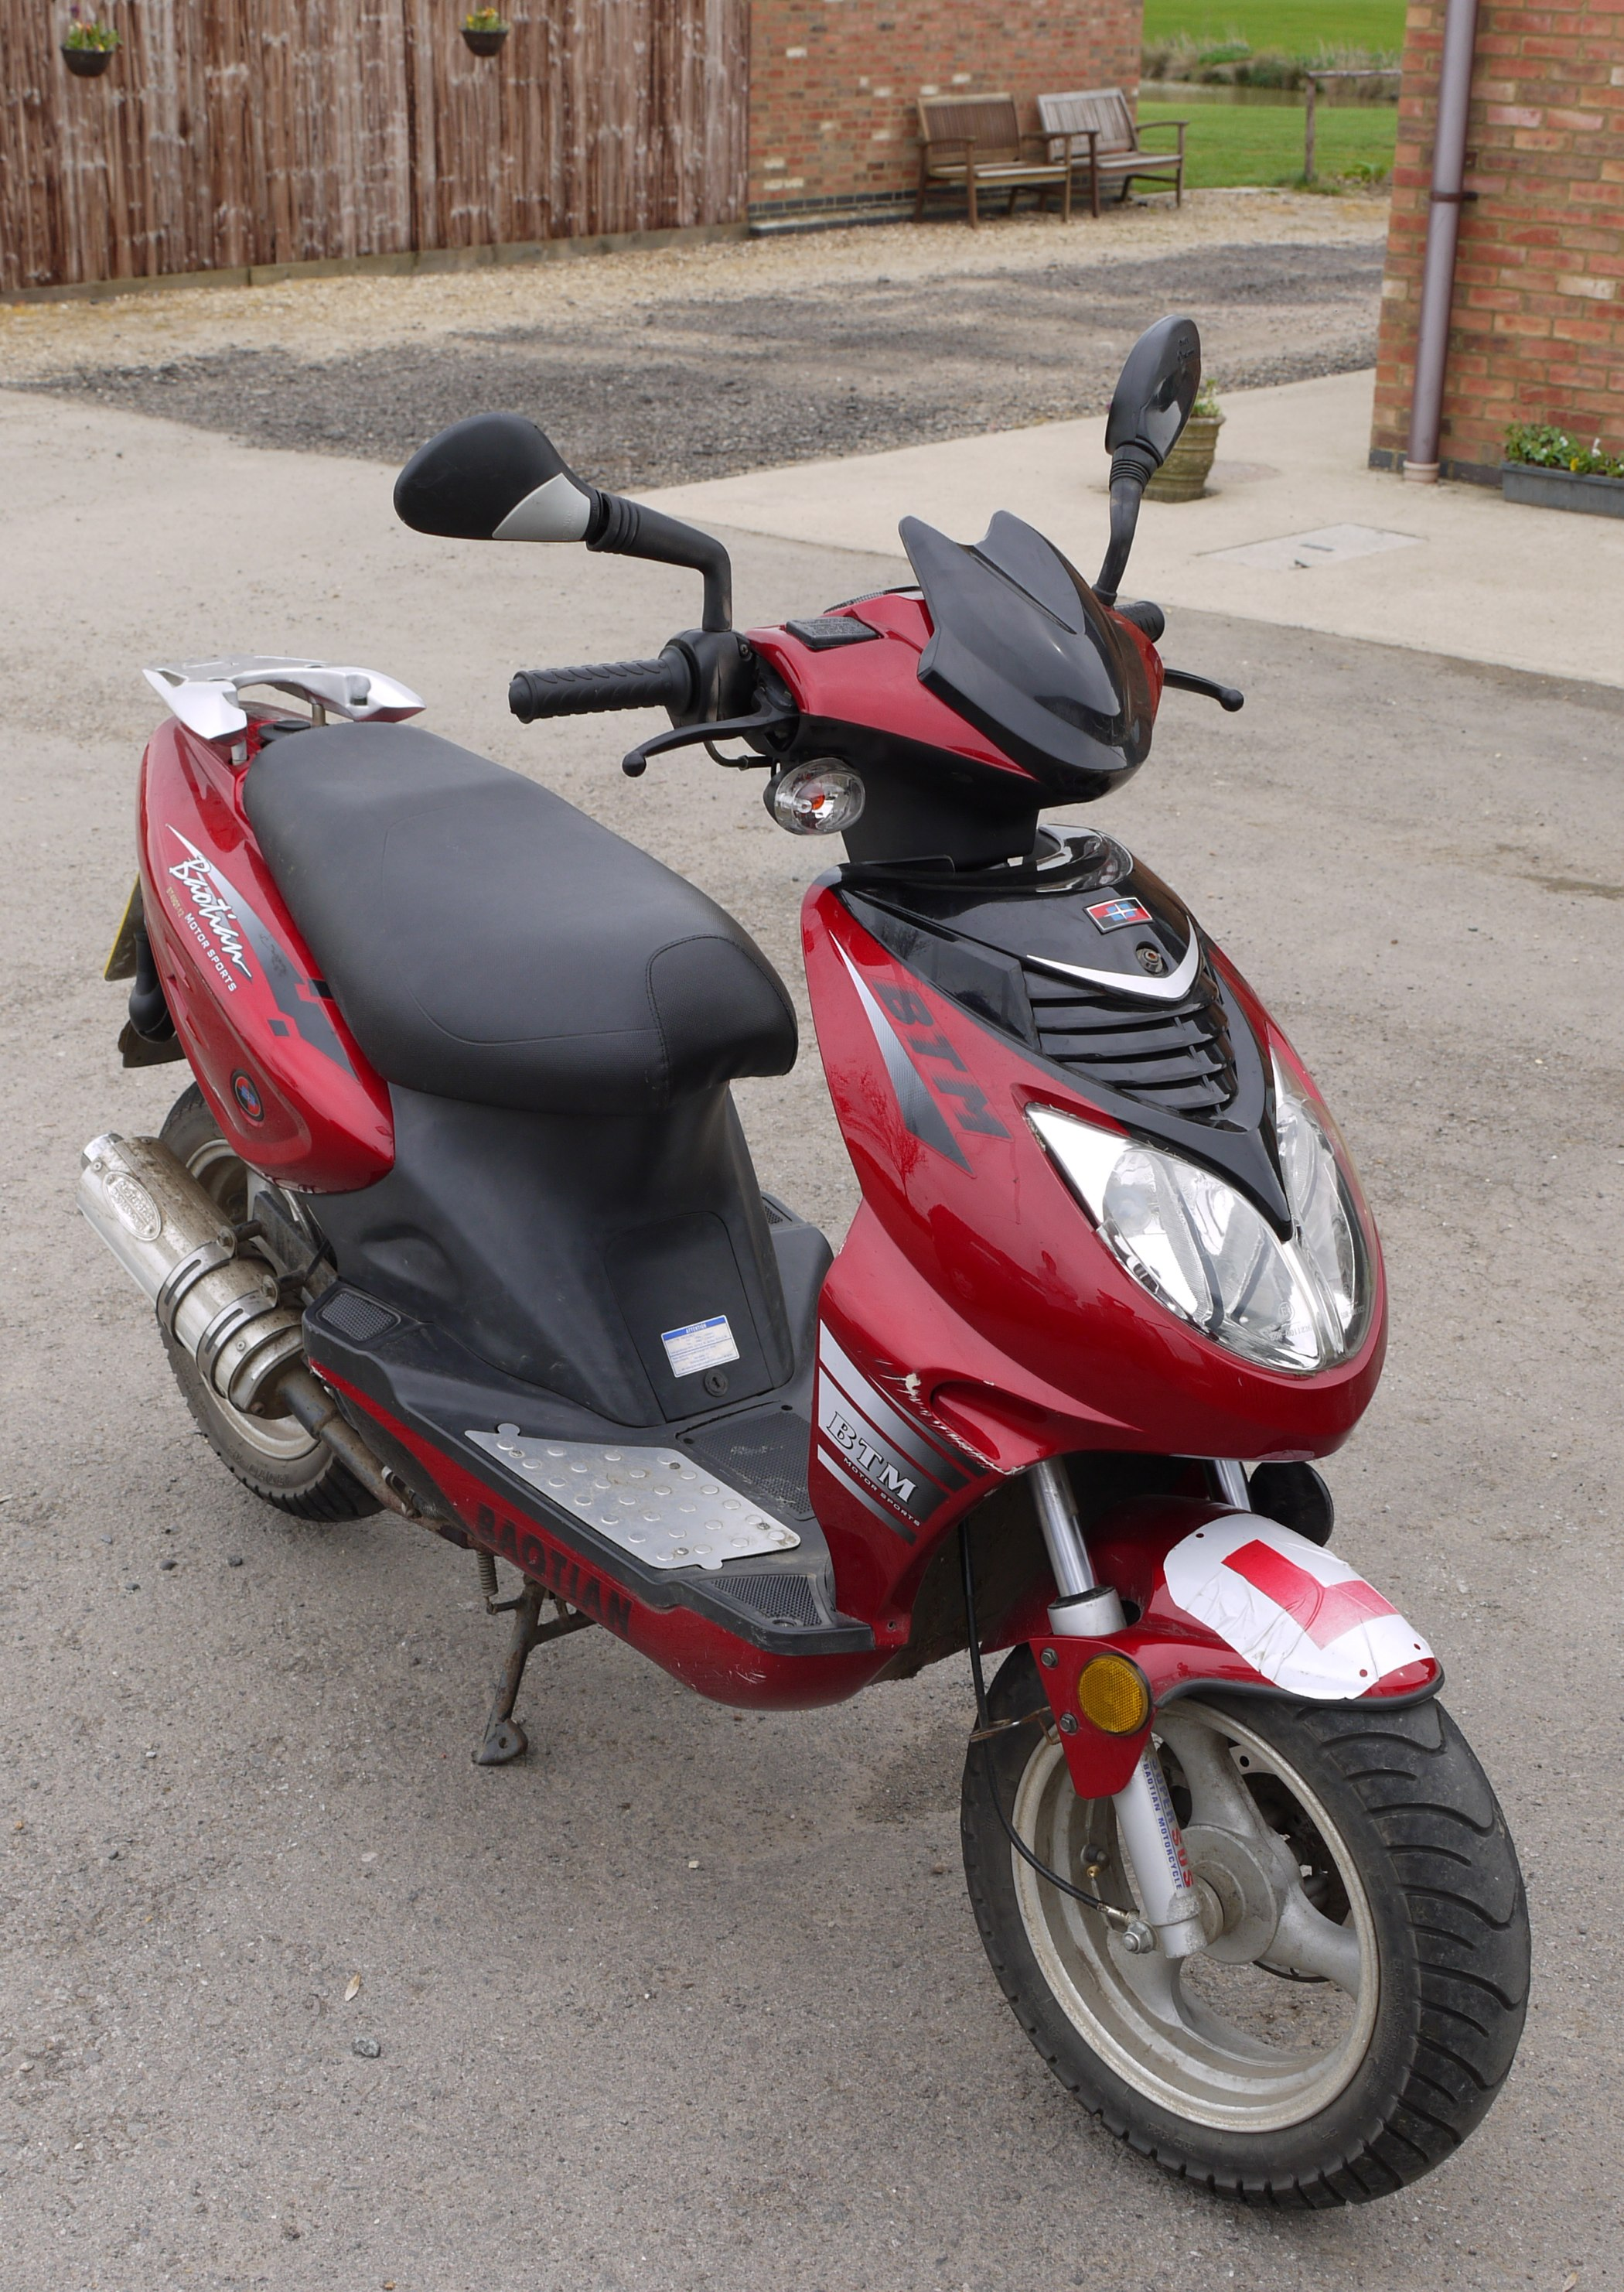 moped scooters bing images. Black Bedroom Furniture Sets. Home Design Ideas